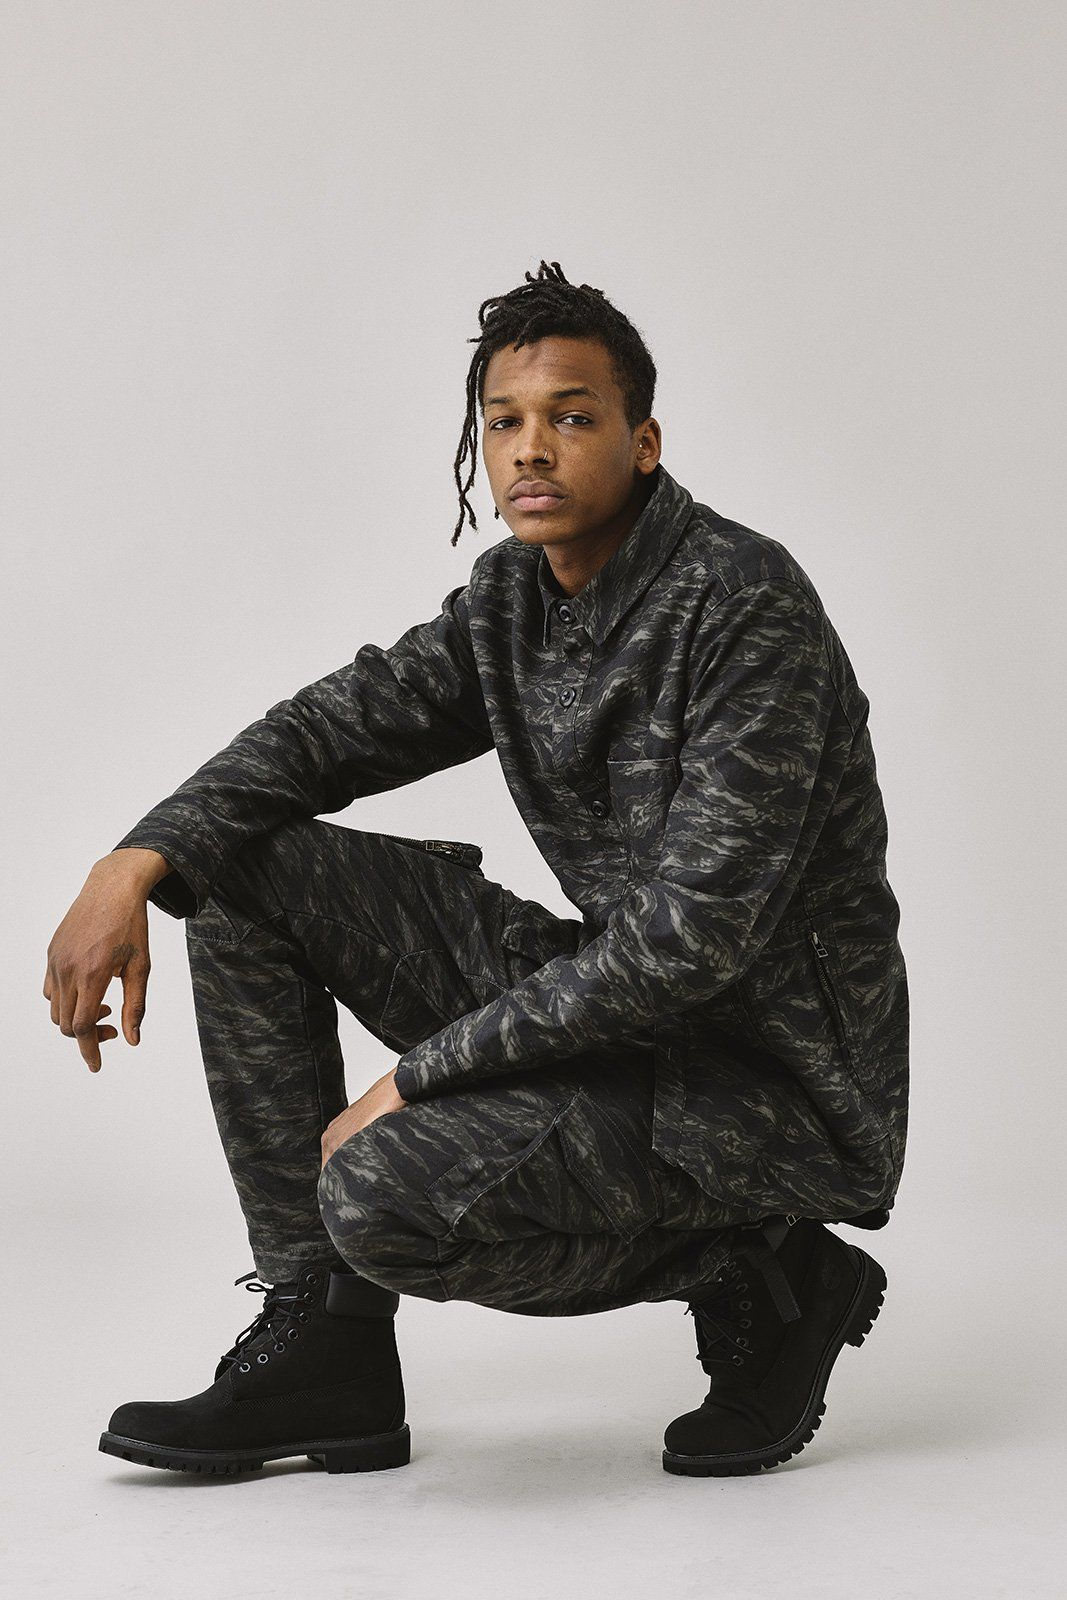 Kith Military Men Mens Outfits Hold On [ 1600 x 1067 Pixel ]